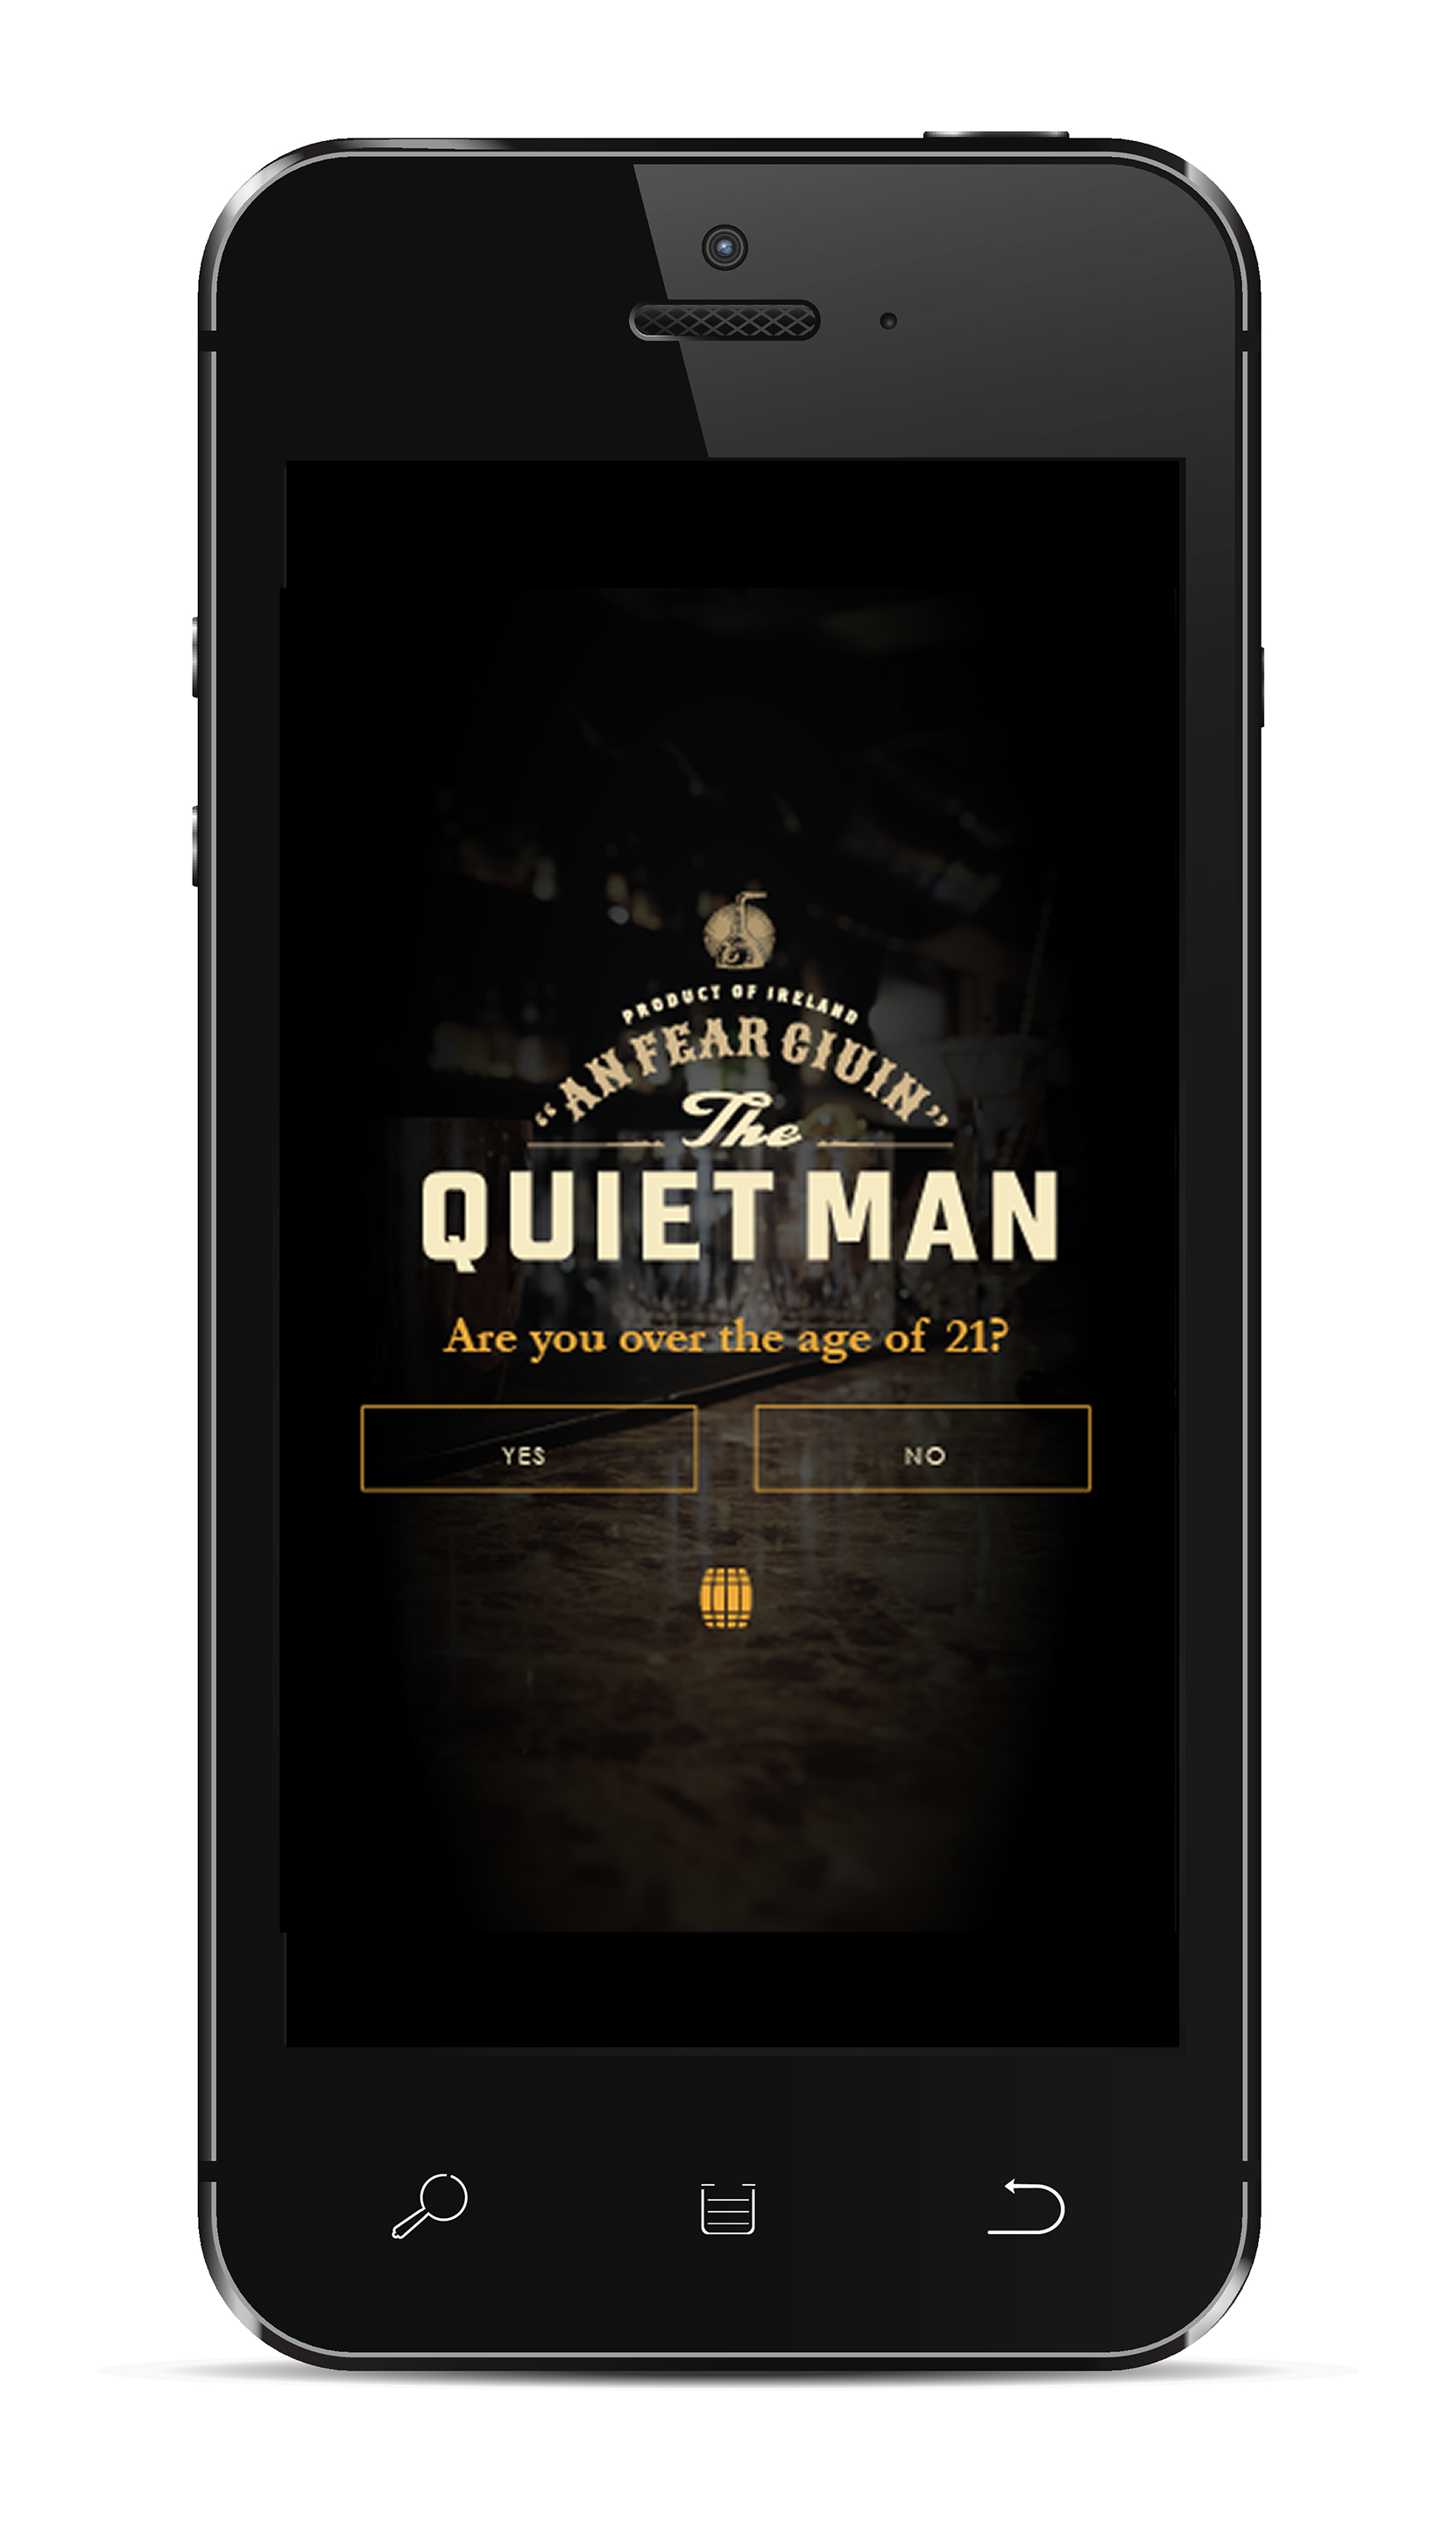 quietman_mobile_thumb.png